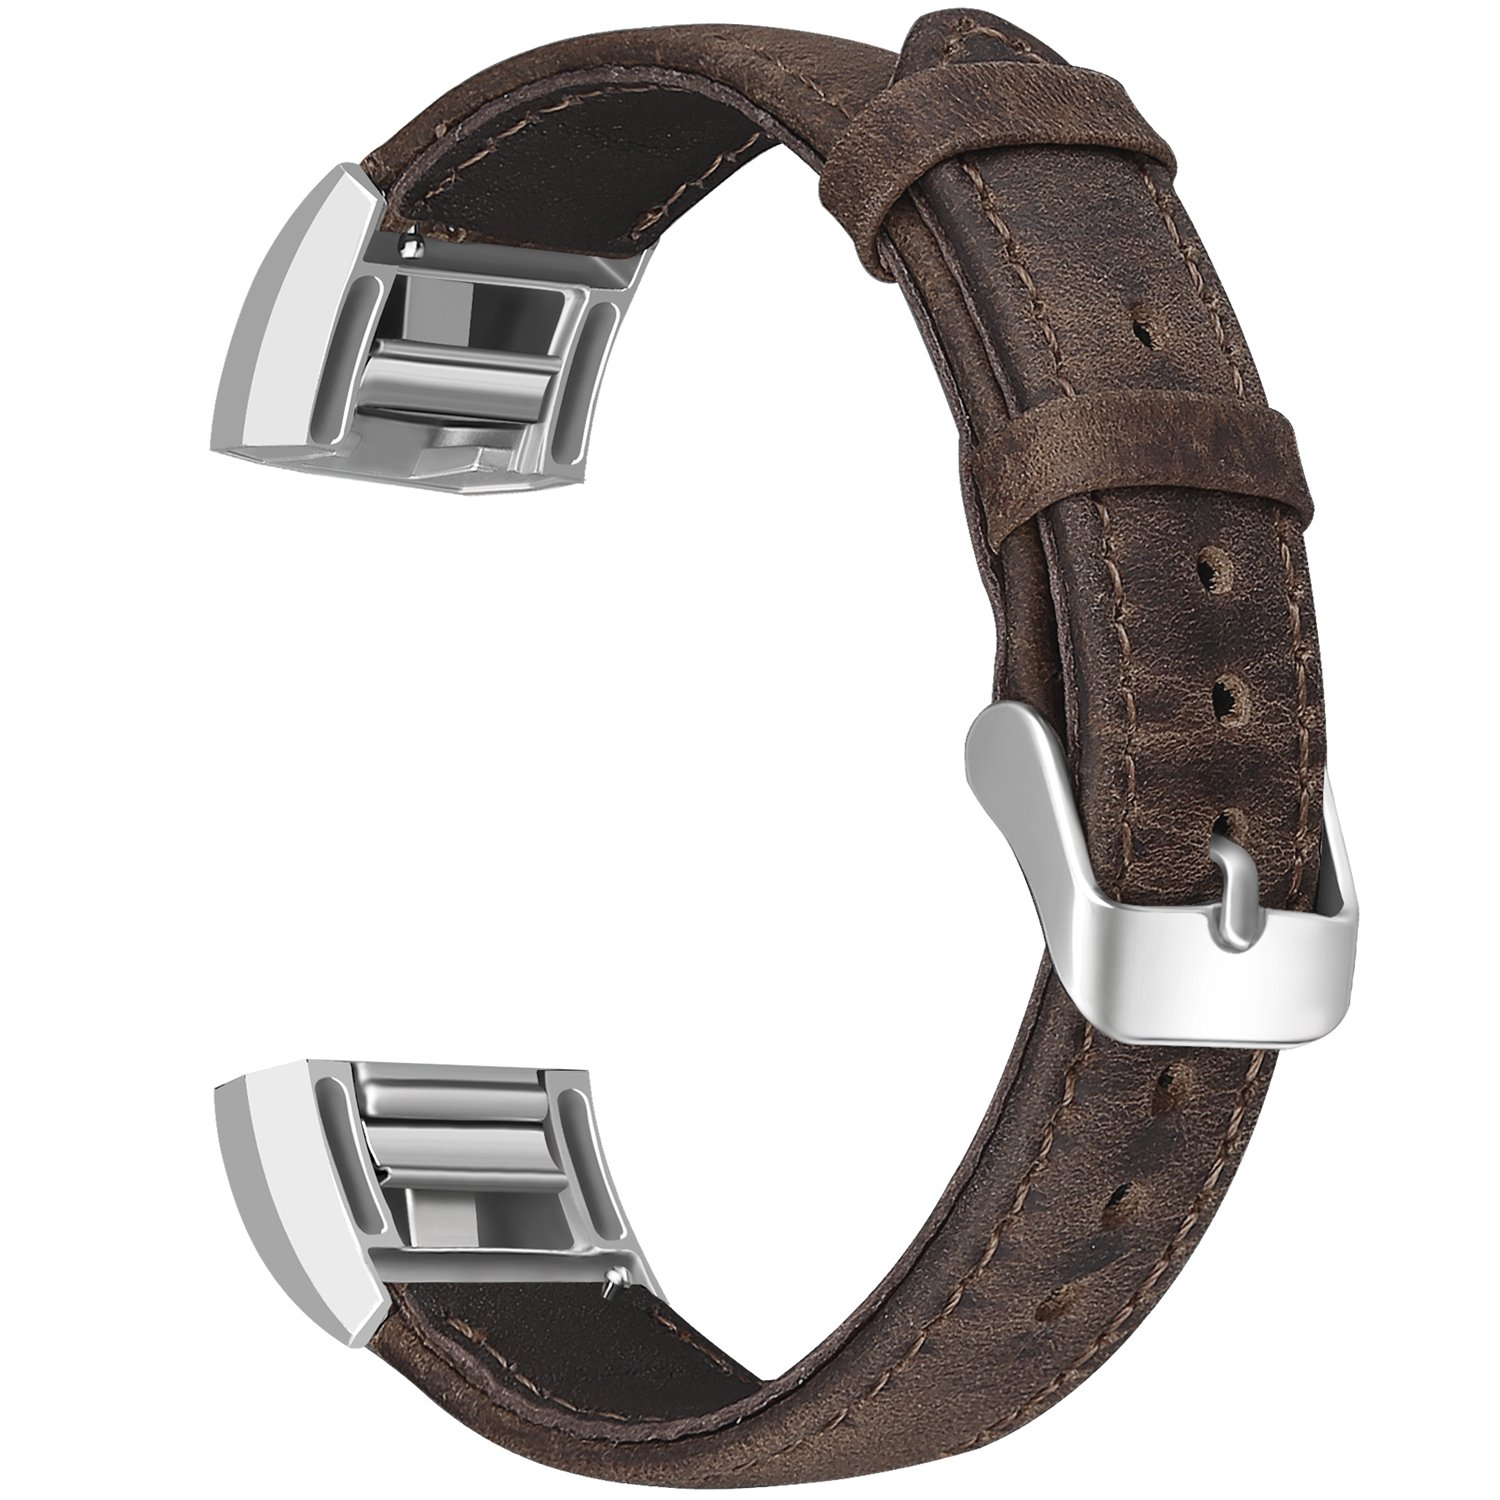 SKYLET For Fitbit Charge 2 Bands, Retro Replacement Genuine Leather Strap for Fitbit Charge 2 Wristbands (No Tracker)[Retro Brown]